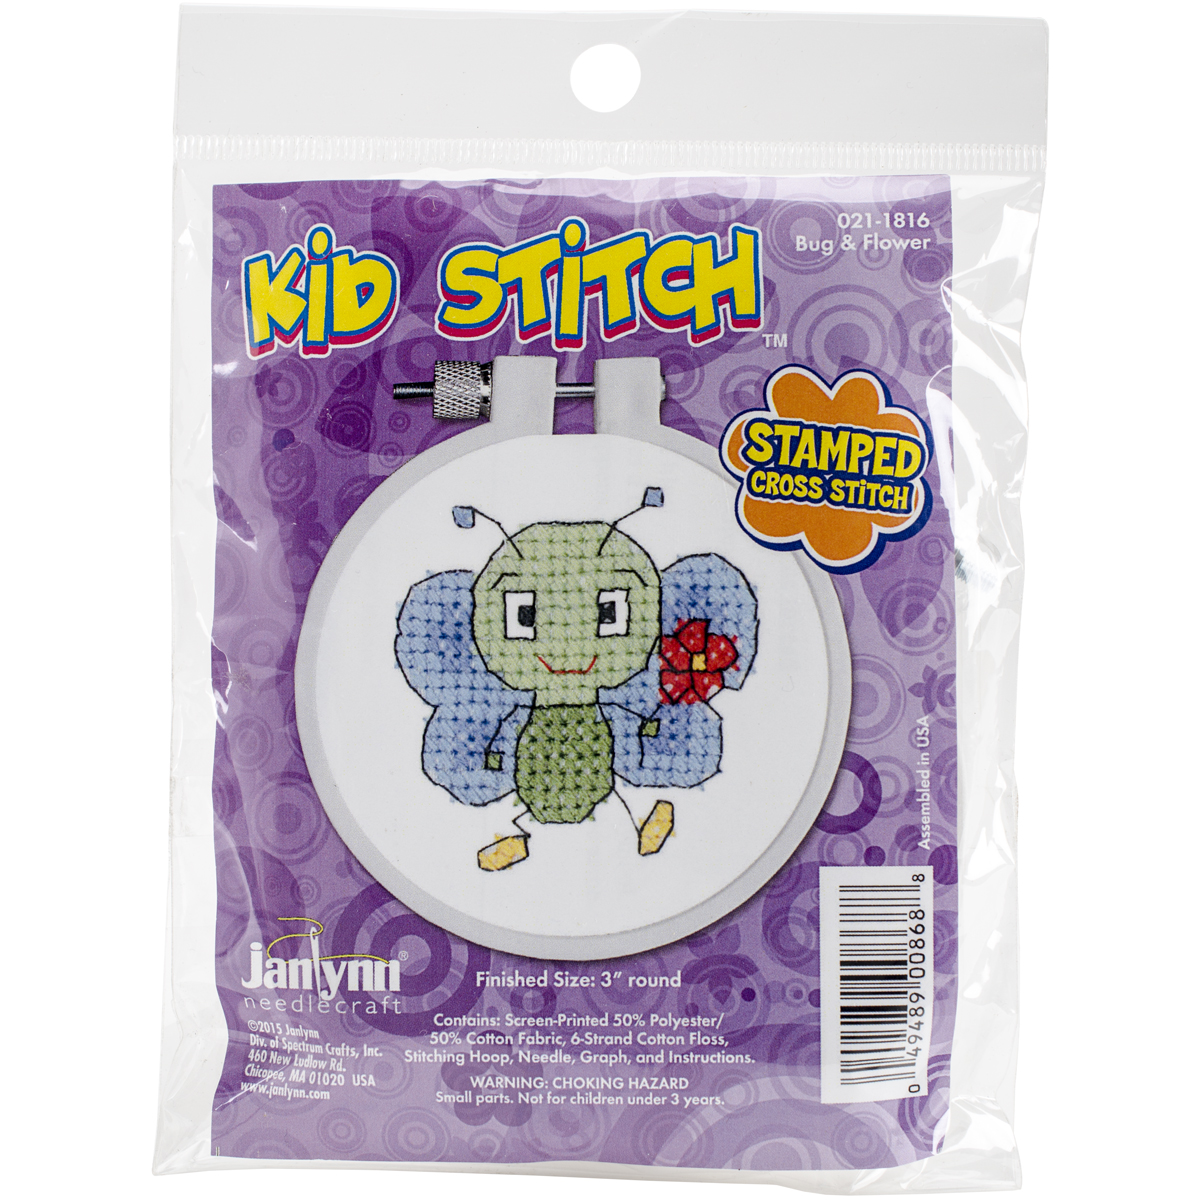 "Kid Stitch Bug & Flower Stamped Cross Stitch Kit, 3"" Round"